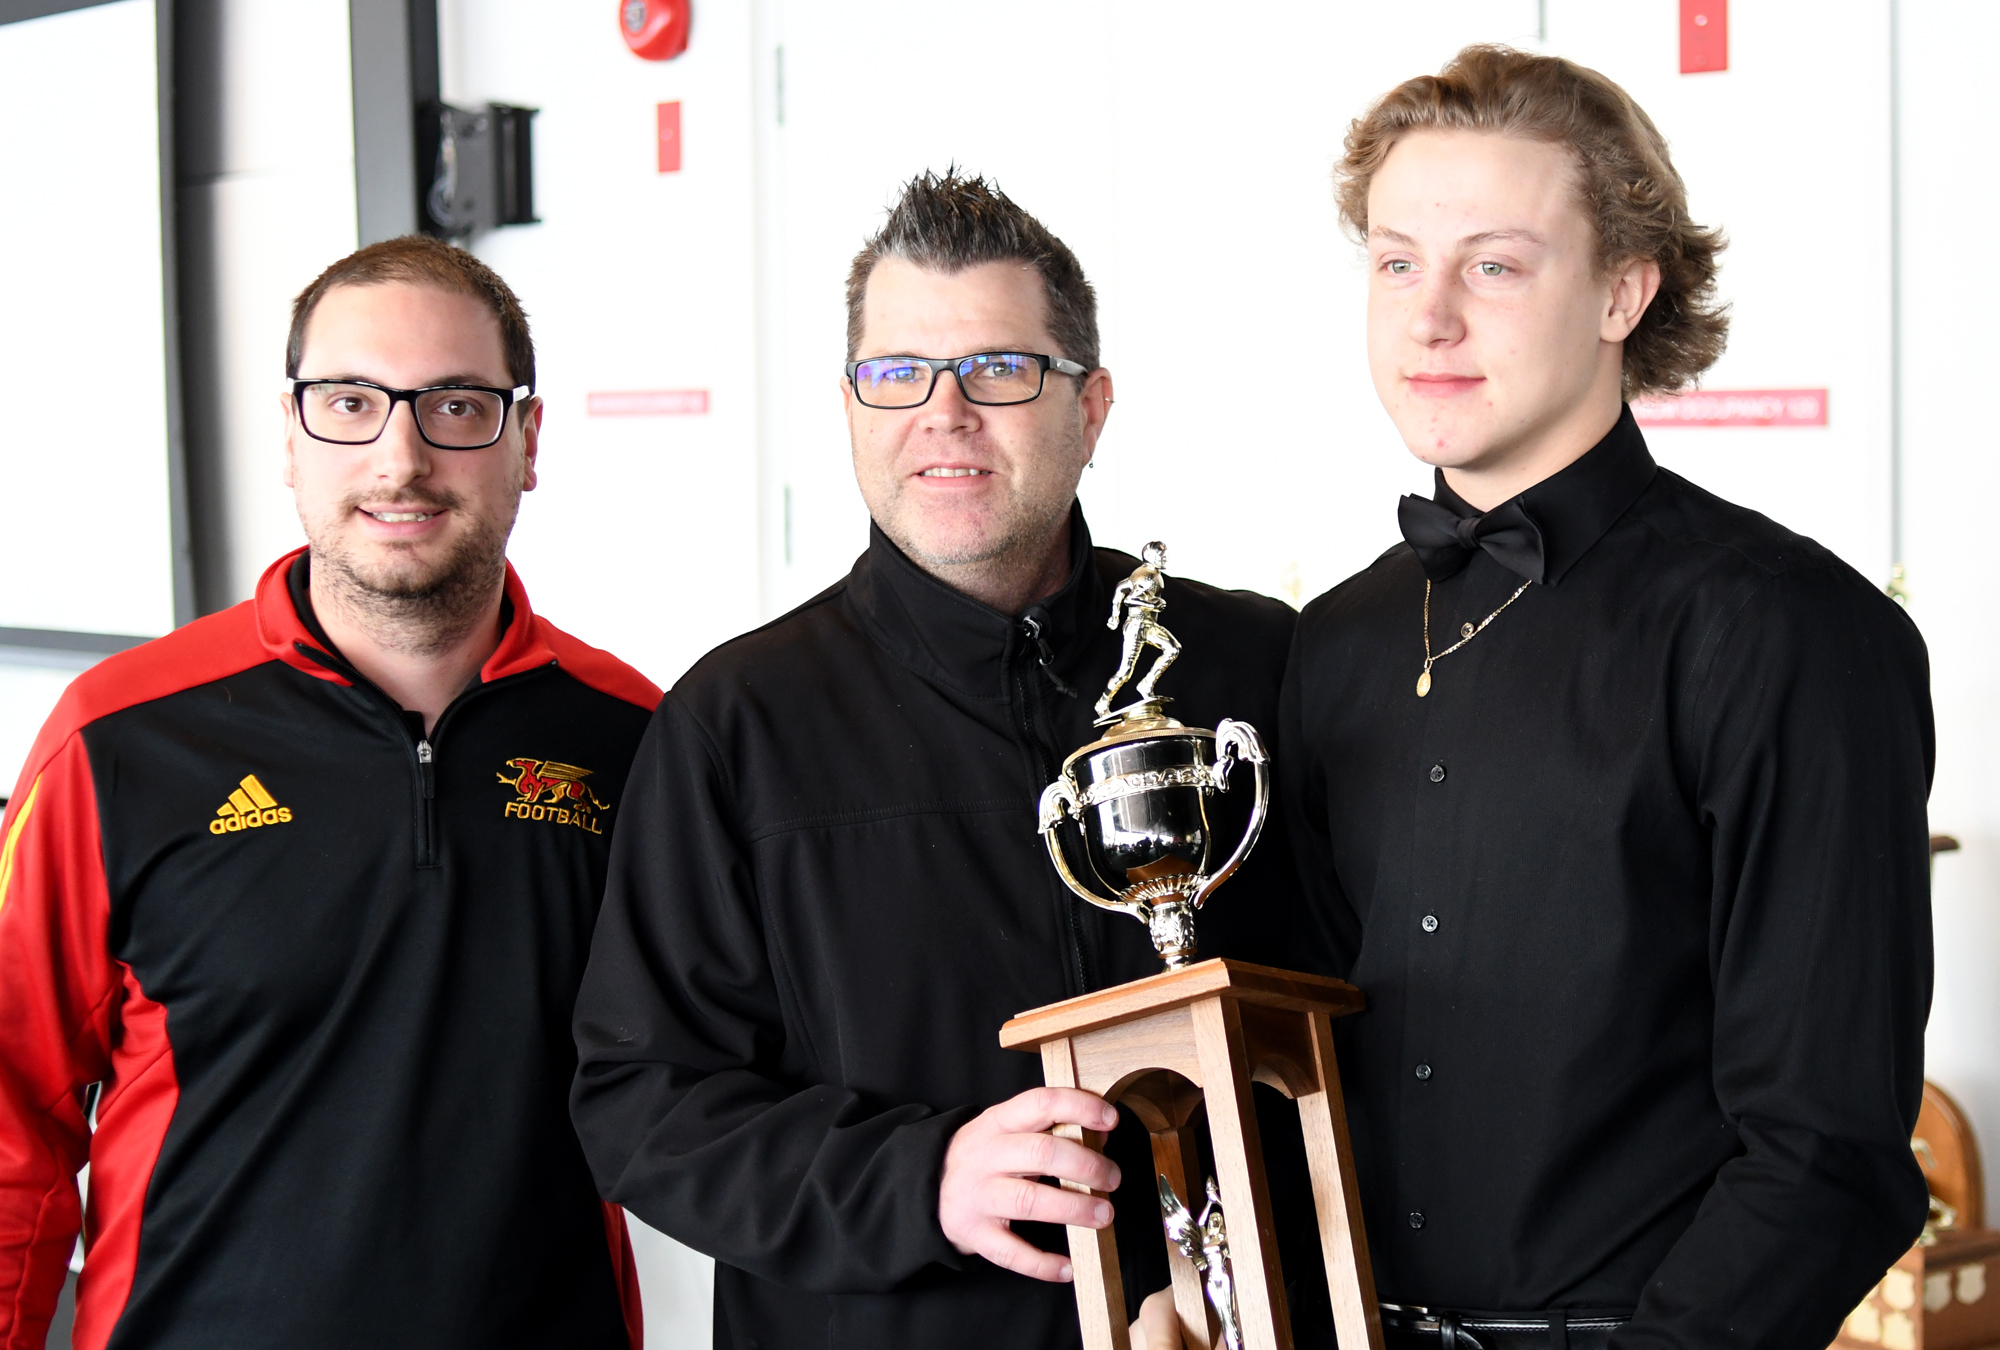 Gryphon Director of Football Operations Mike Aloisio, left, with St. James coach Jeff Cummings, middle, and defensive player of the year award winner Pawel Szymanski.